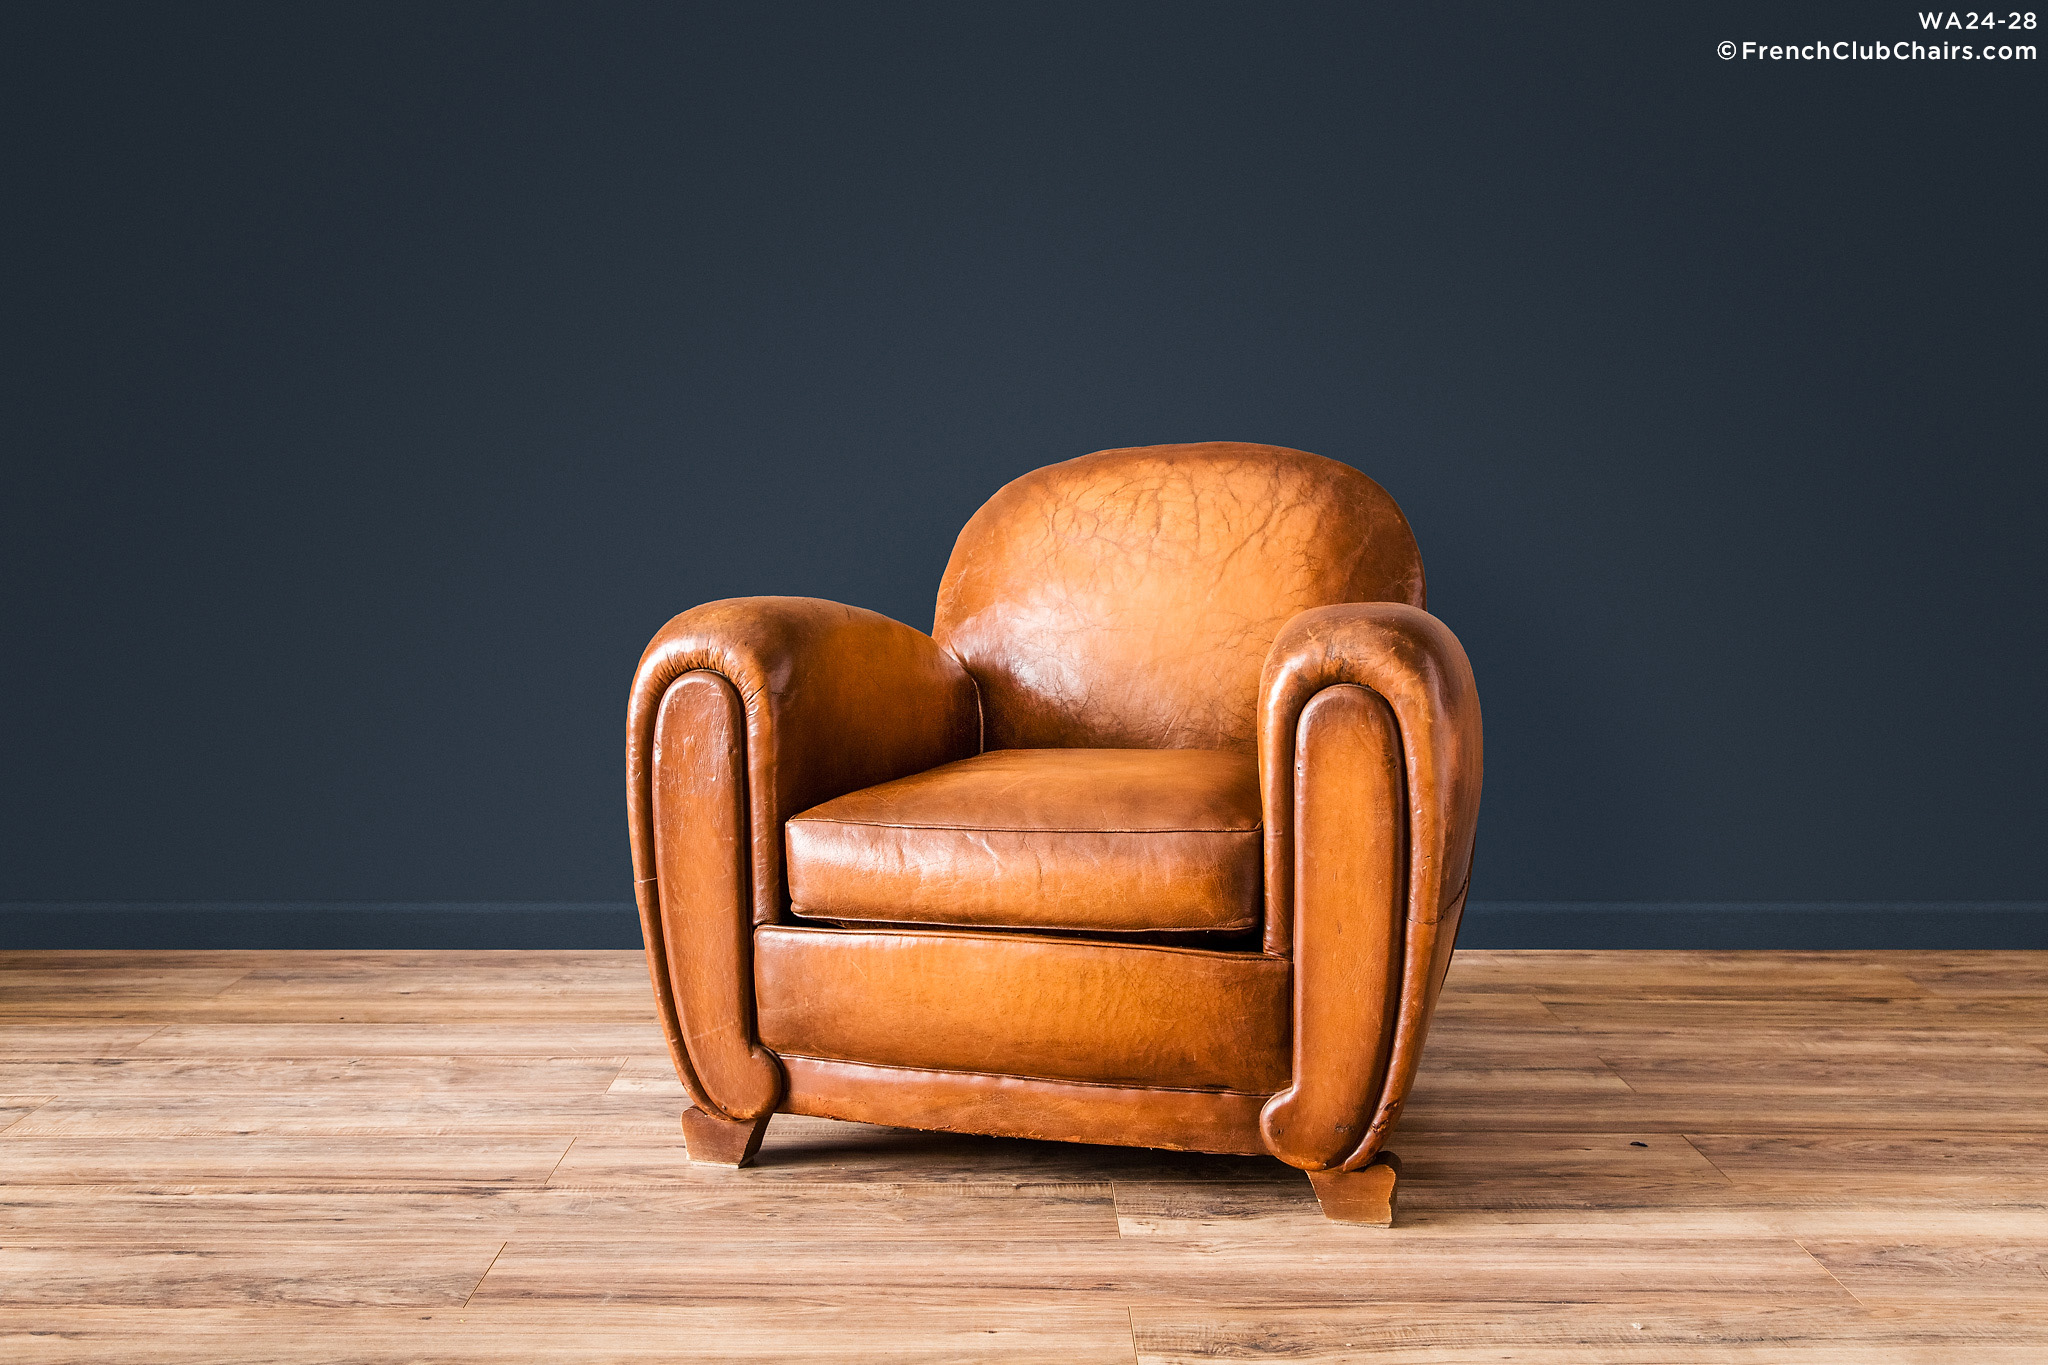 WA24 28_SILVIECINEMASOLO_R V01 Williams Antiks Leather French Club Chair  Wa_fcccom